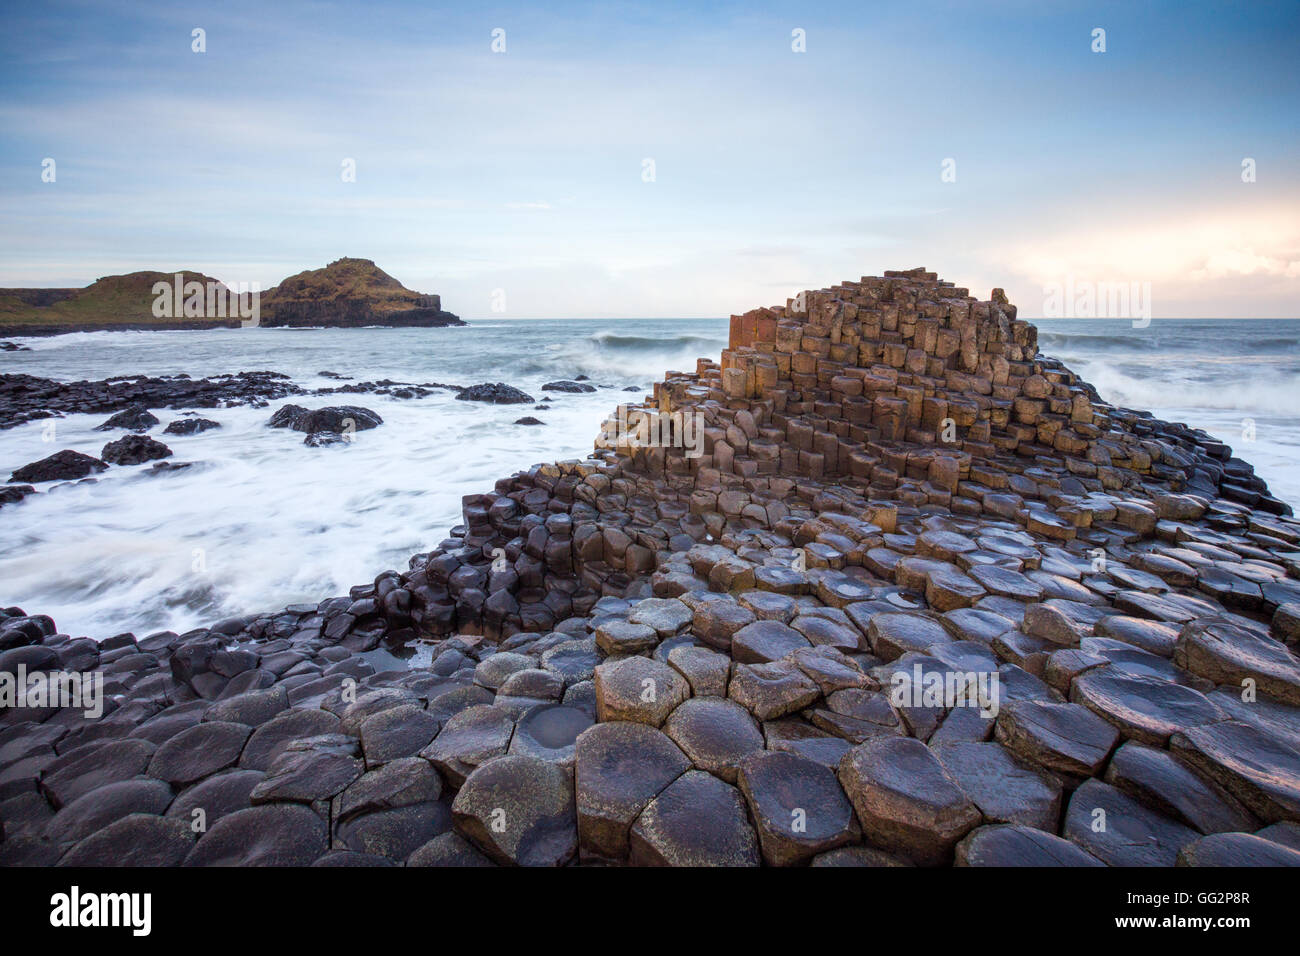 Giant's Causeway in Northern Ireland - Stock Image